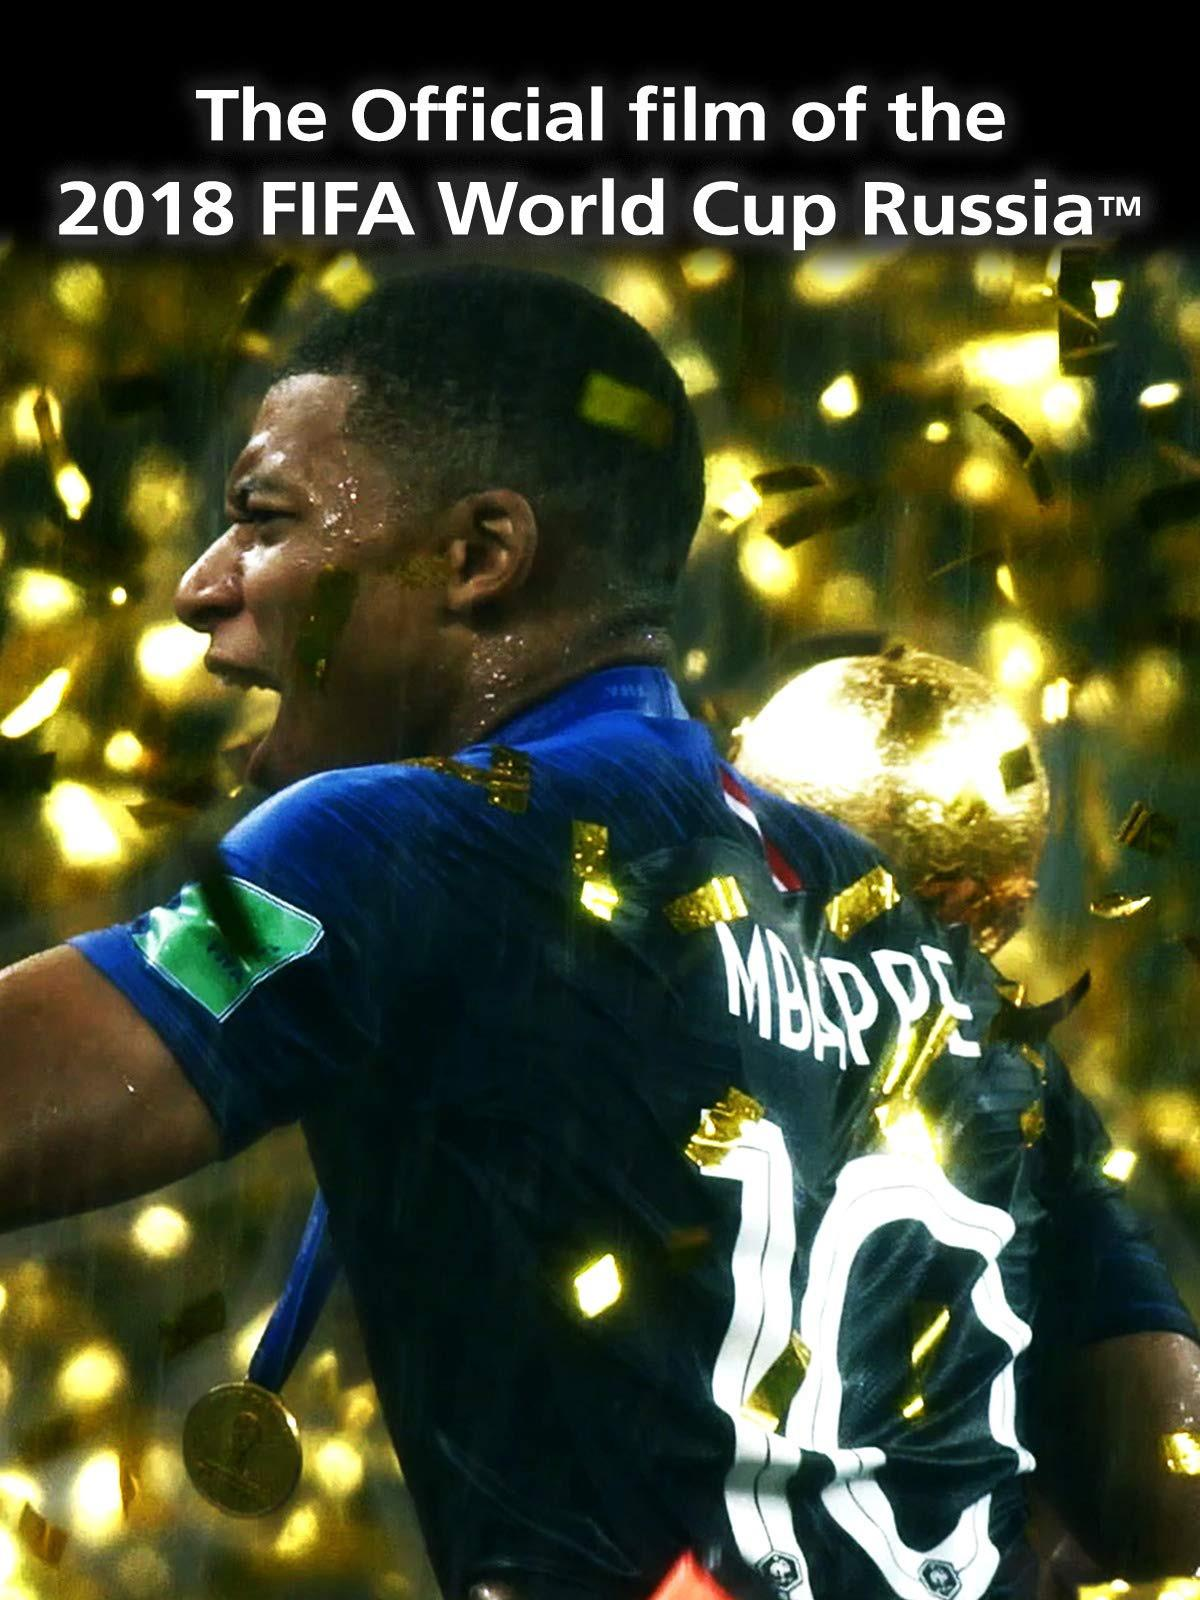 The Official Film of 2018 FIFA World Cup Russia hd on soap2day